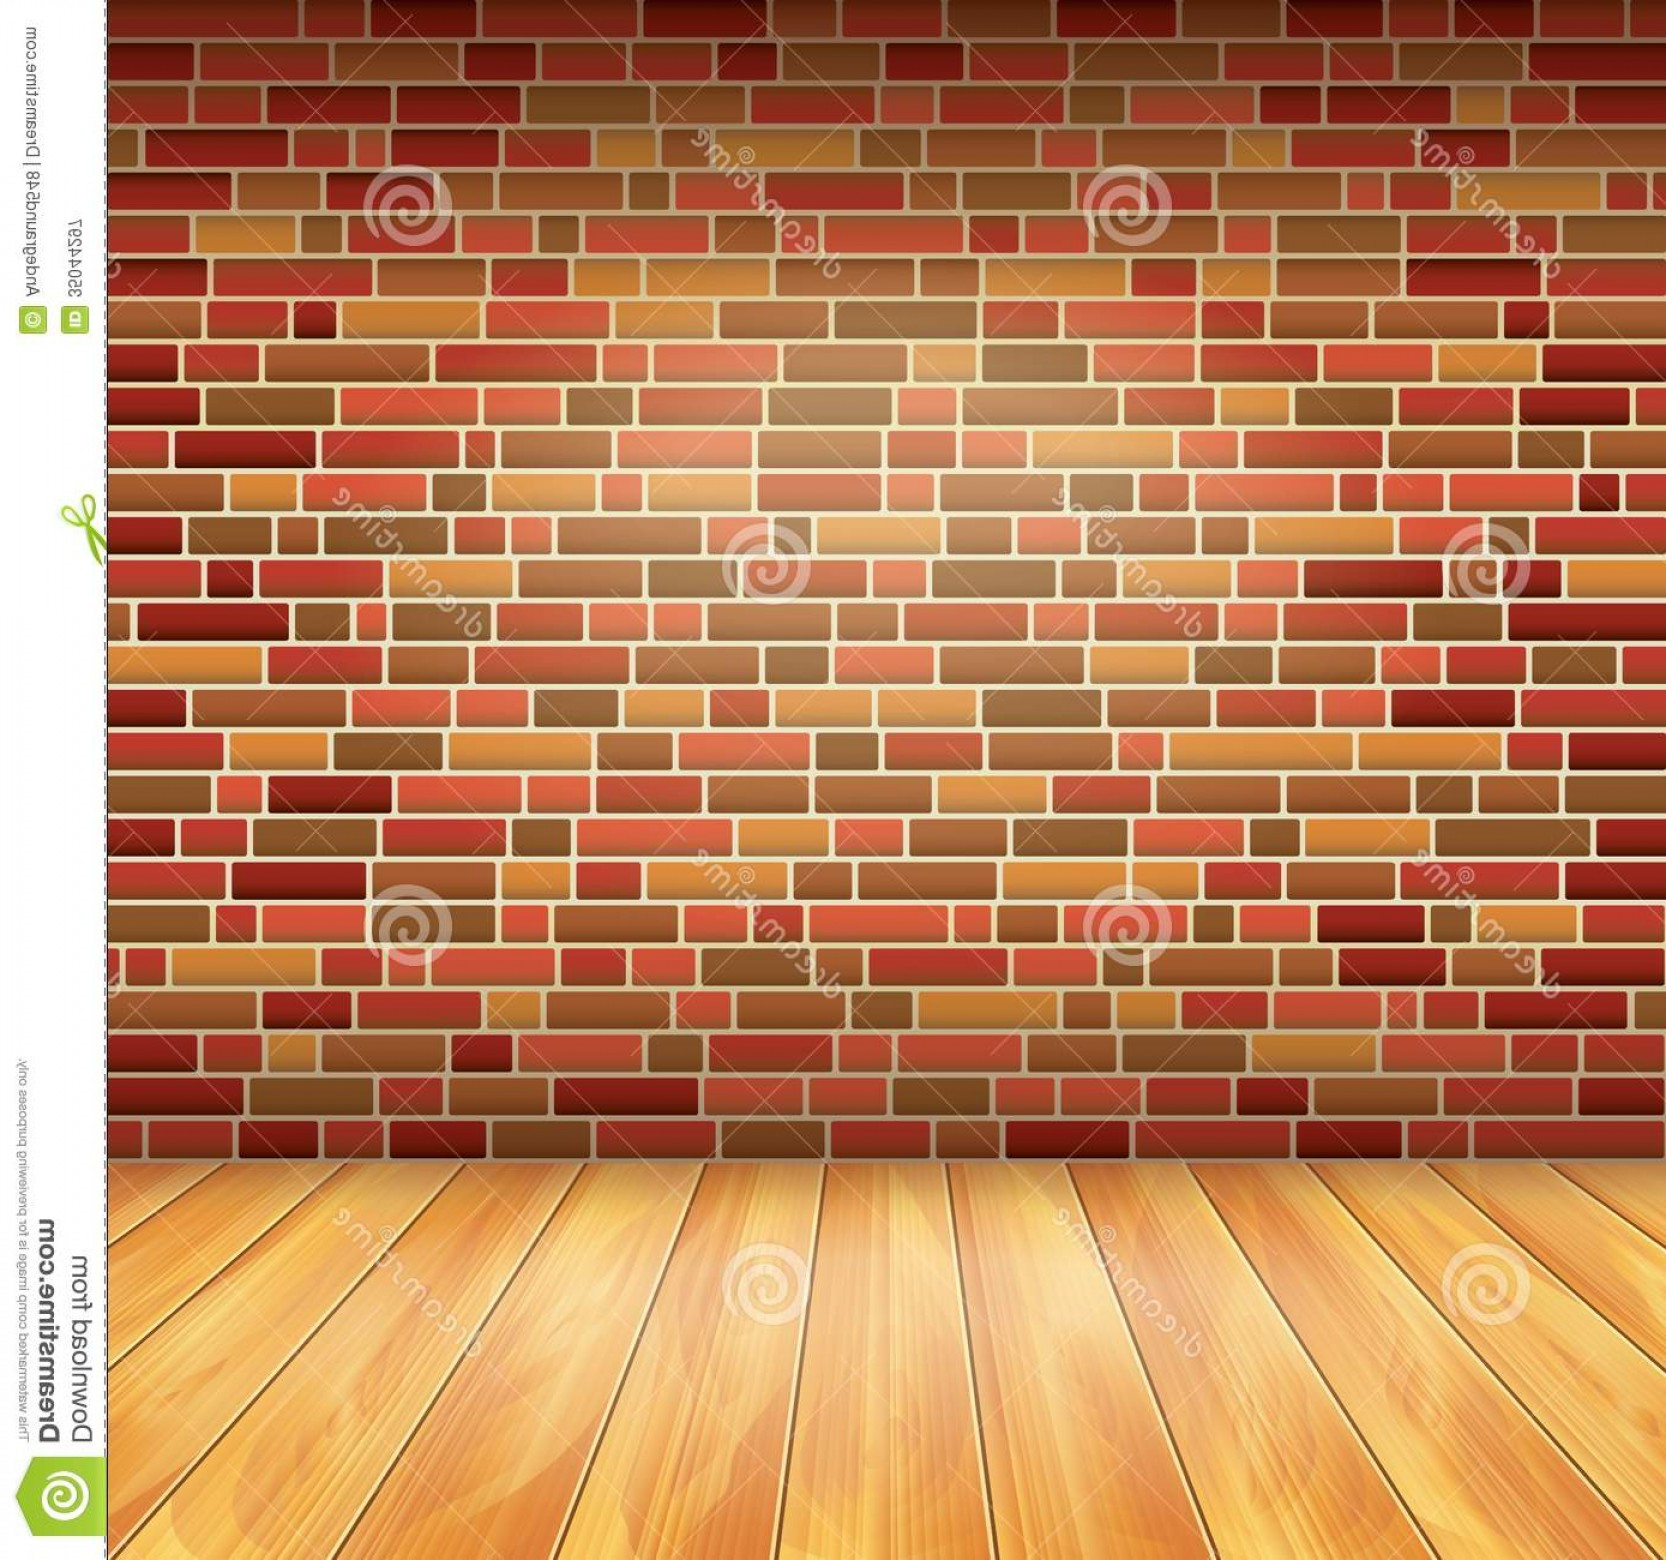 Wall Background Vector: Royalty Free Stock Photography Brick Wall Wood Floor Vector Background Interior Image